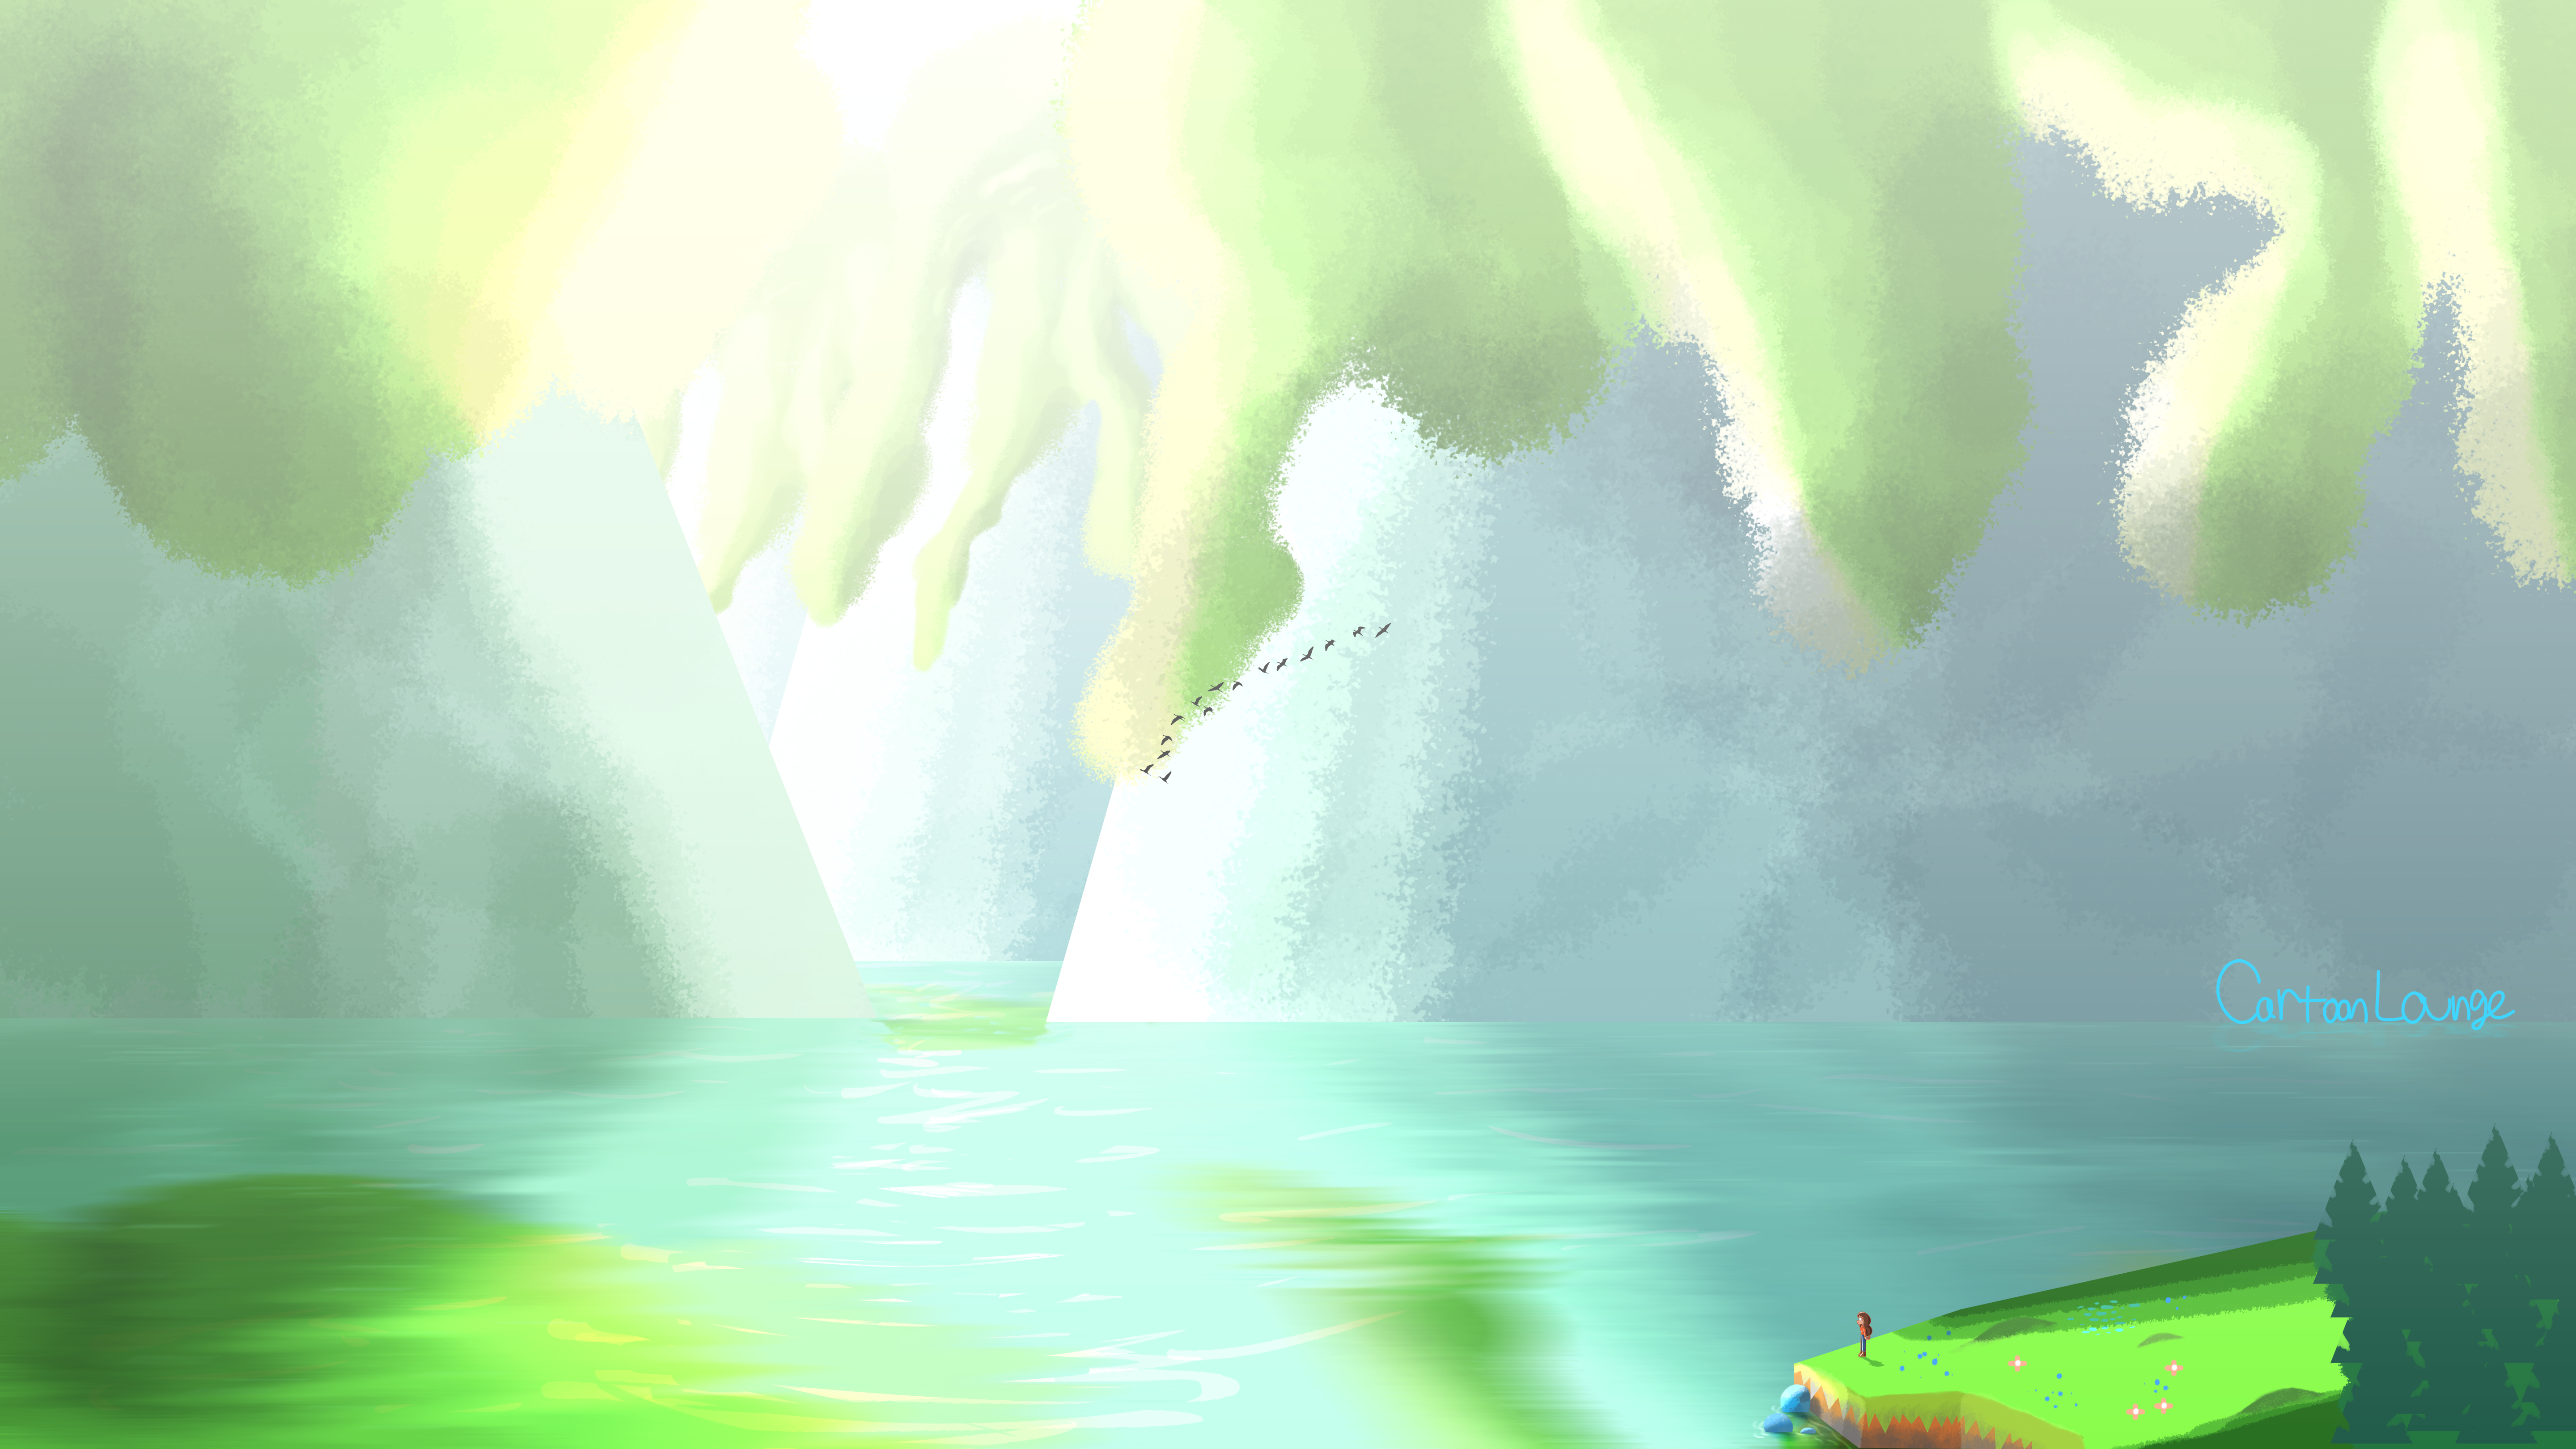 Concept Art: Tiny Island in a Huge Lake